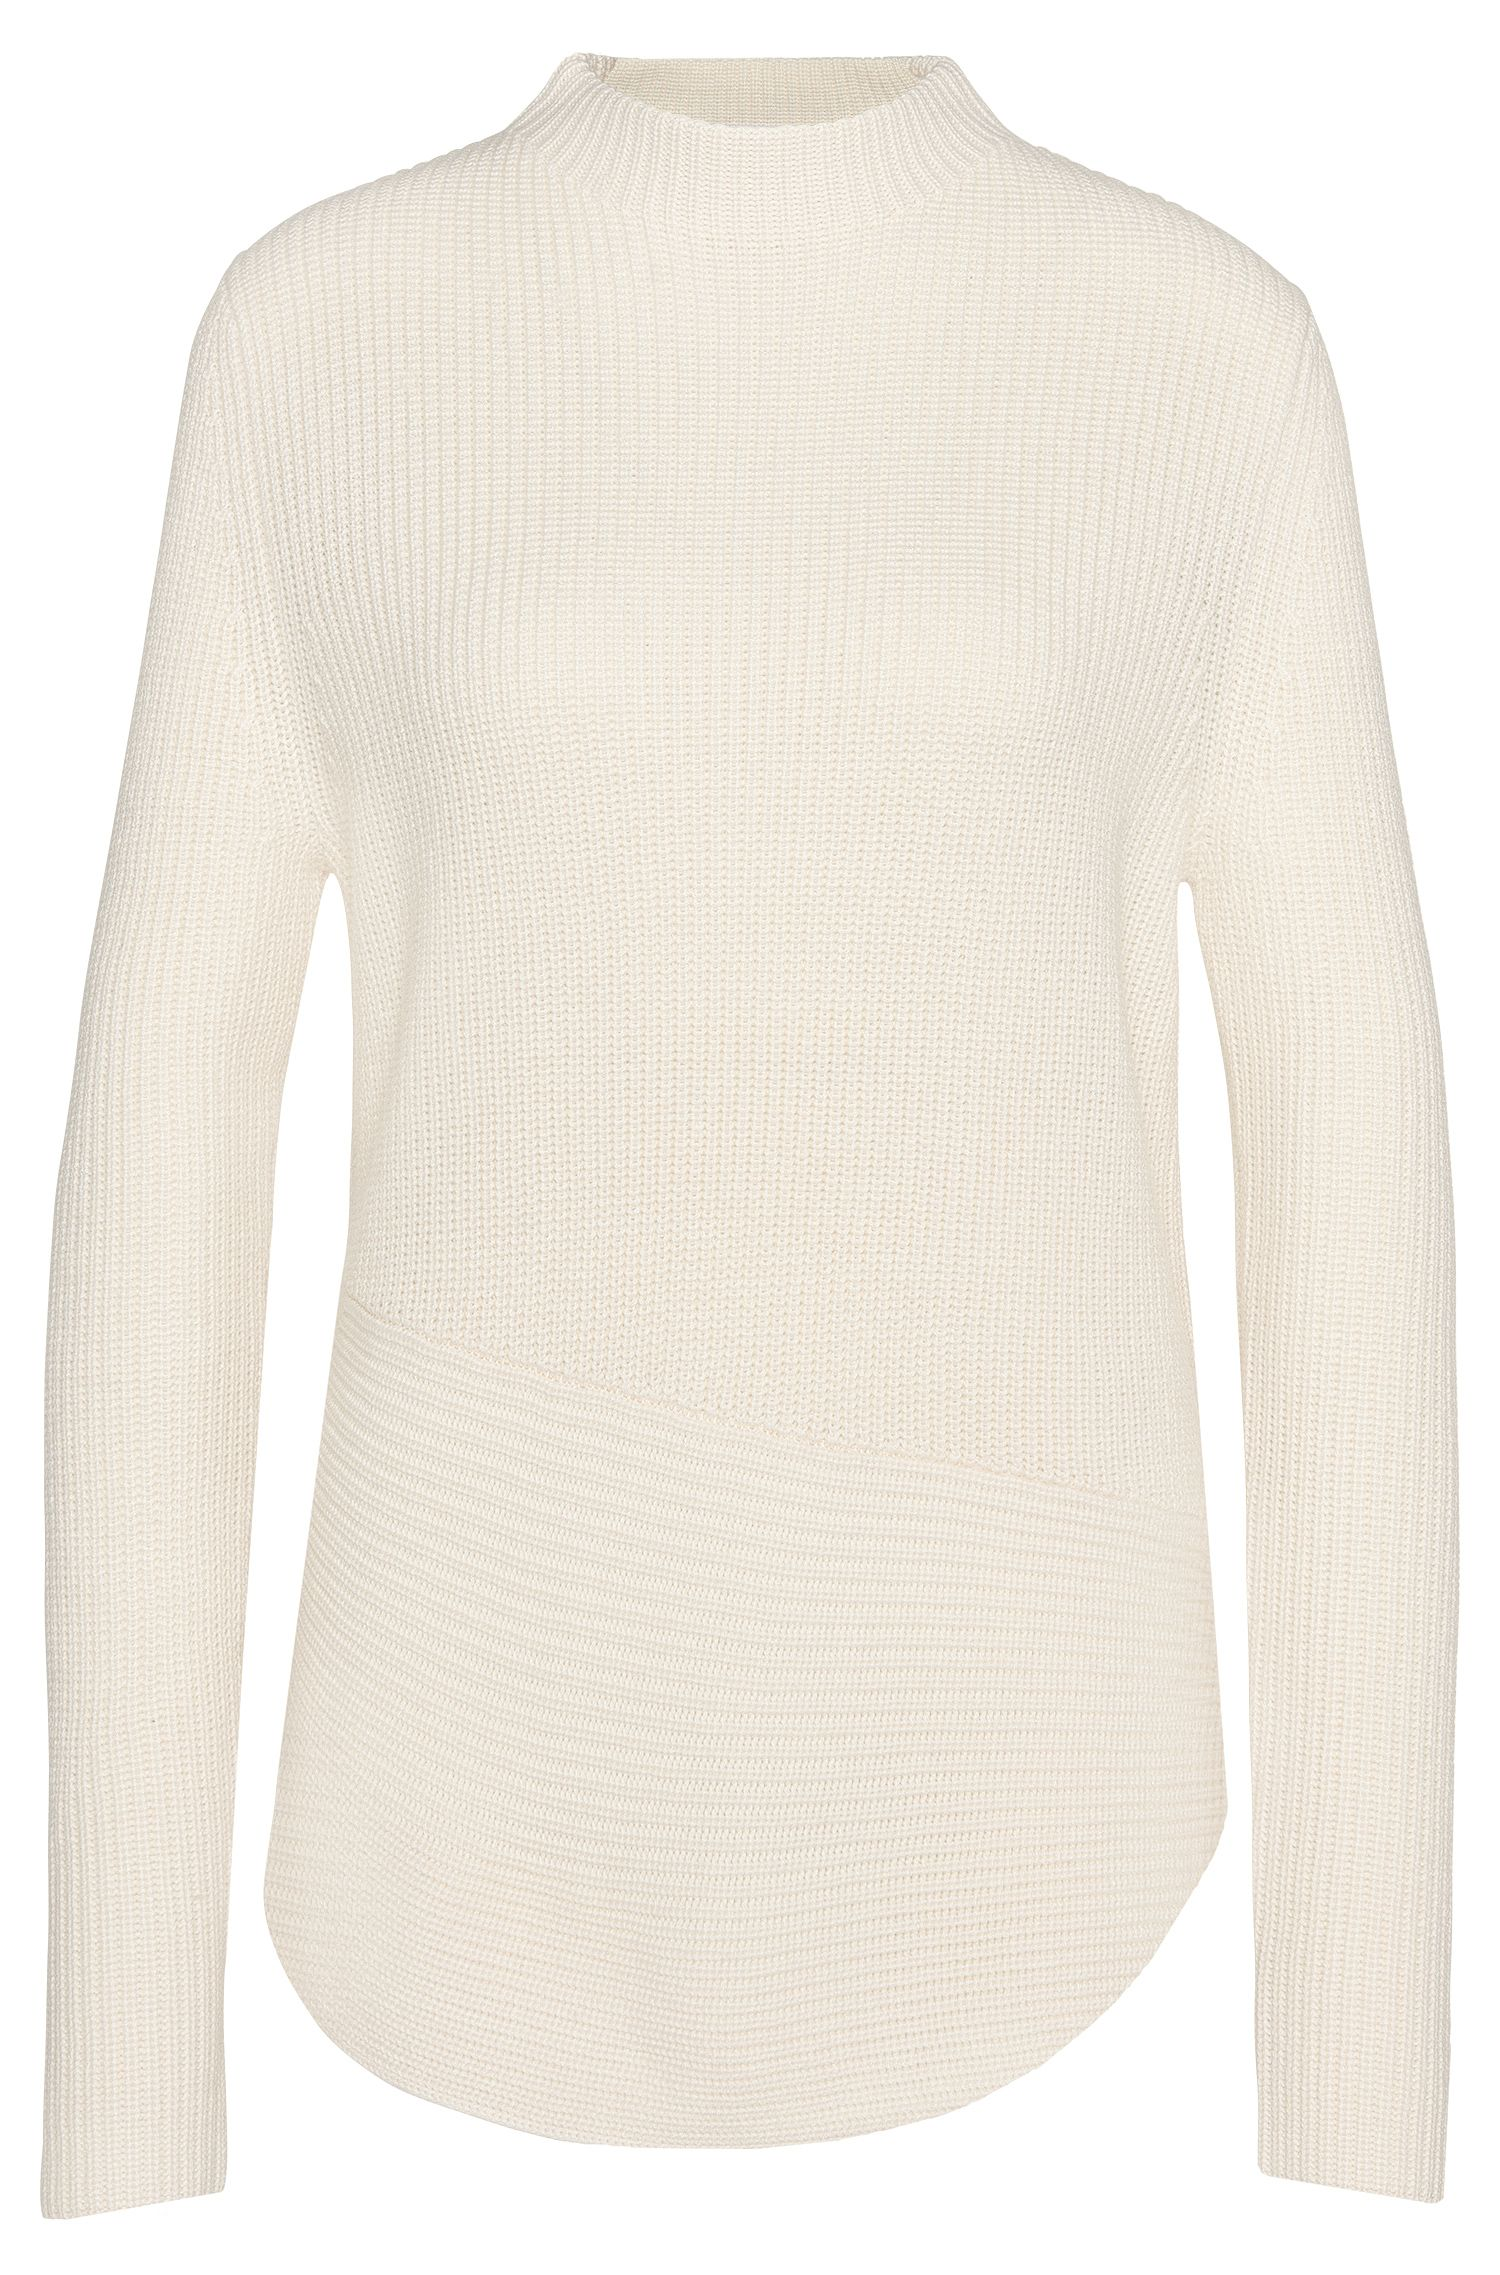 'Farile' | Virgin Wool Cashmere Blend Sweater